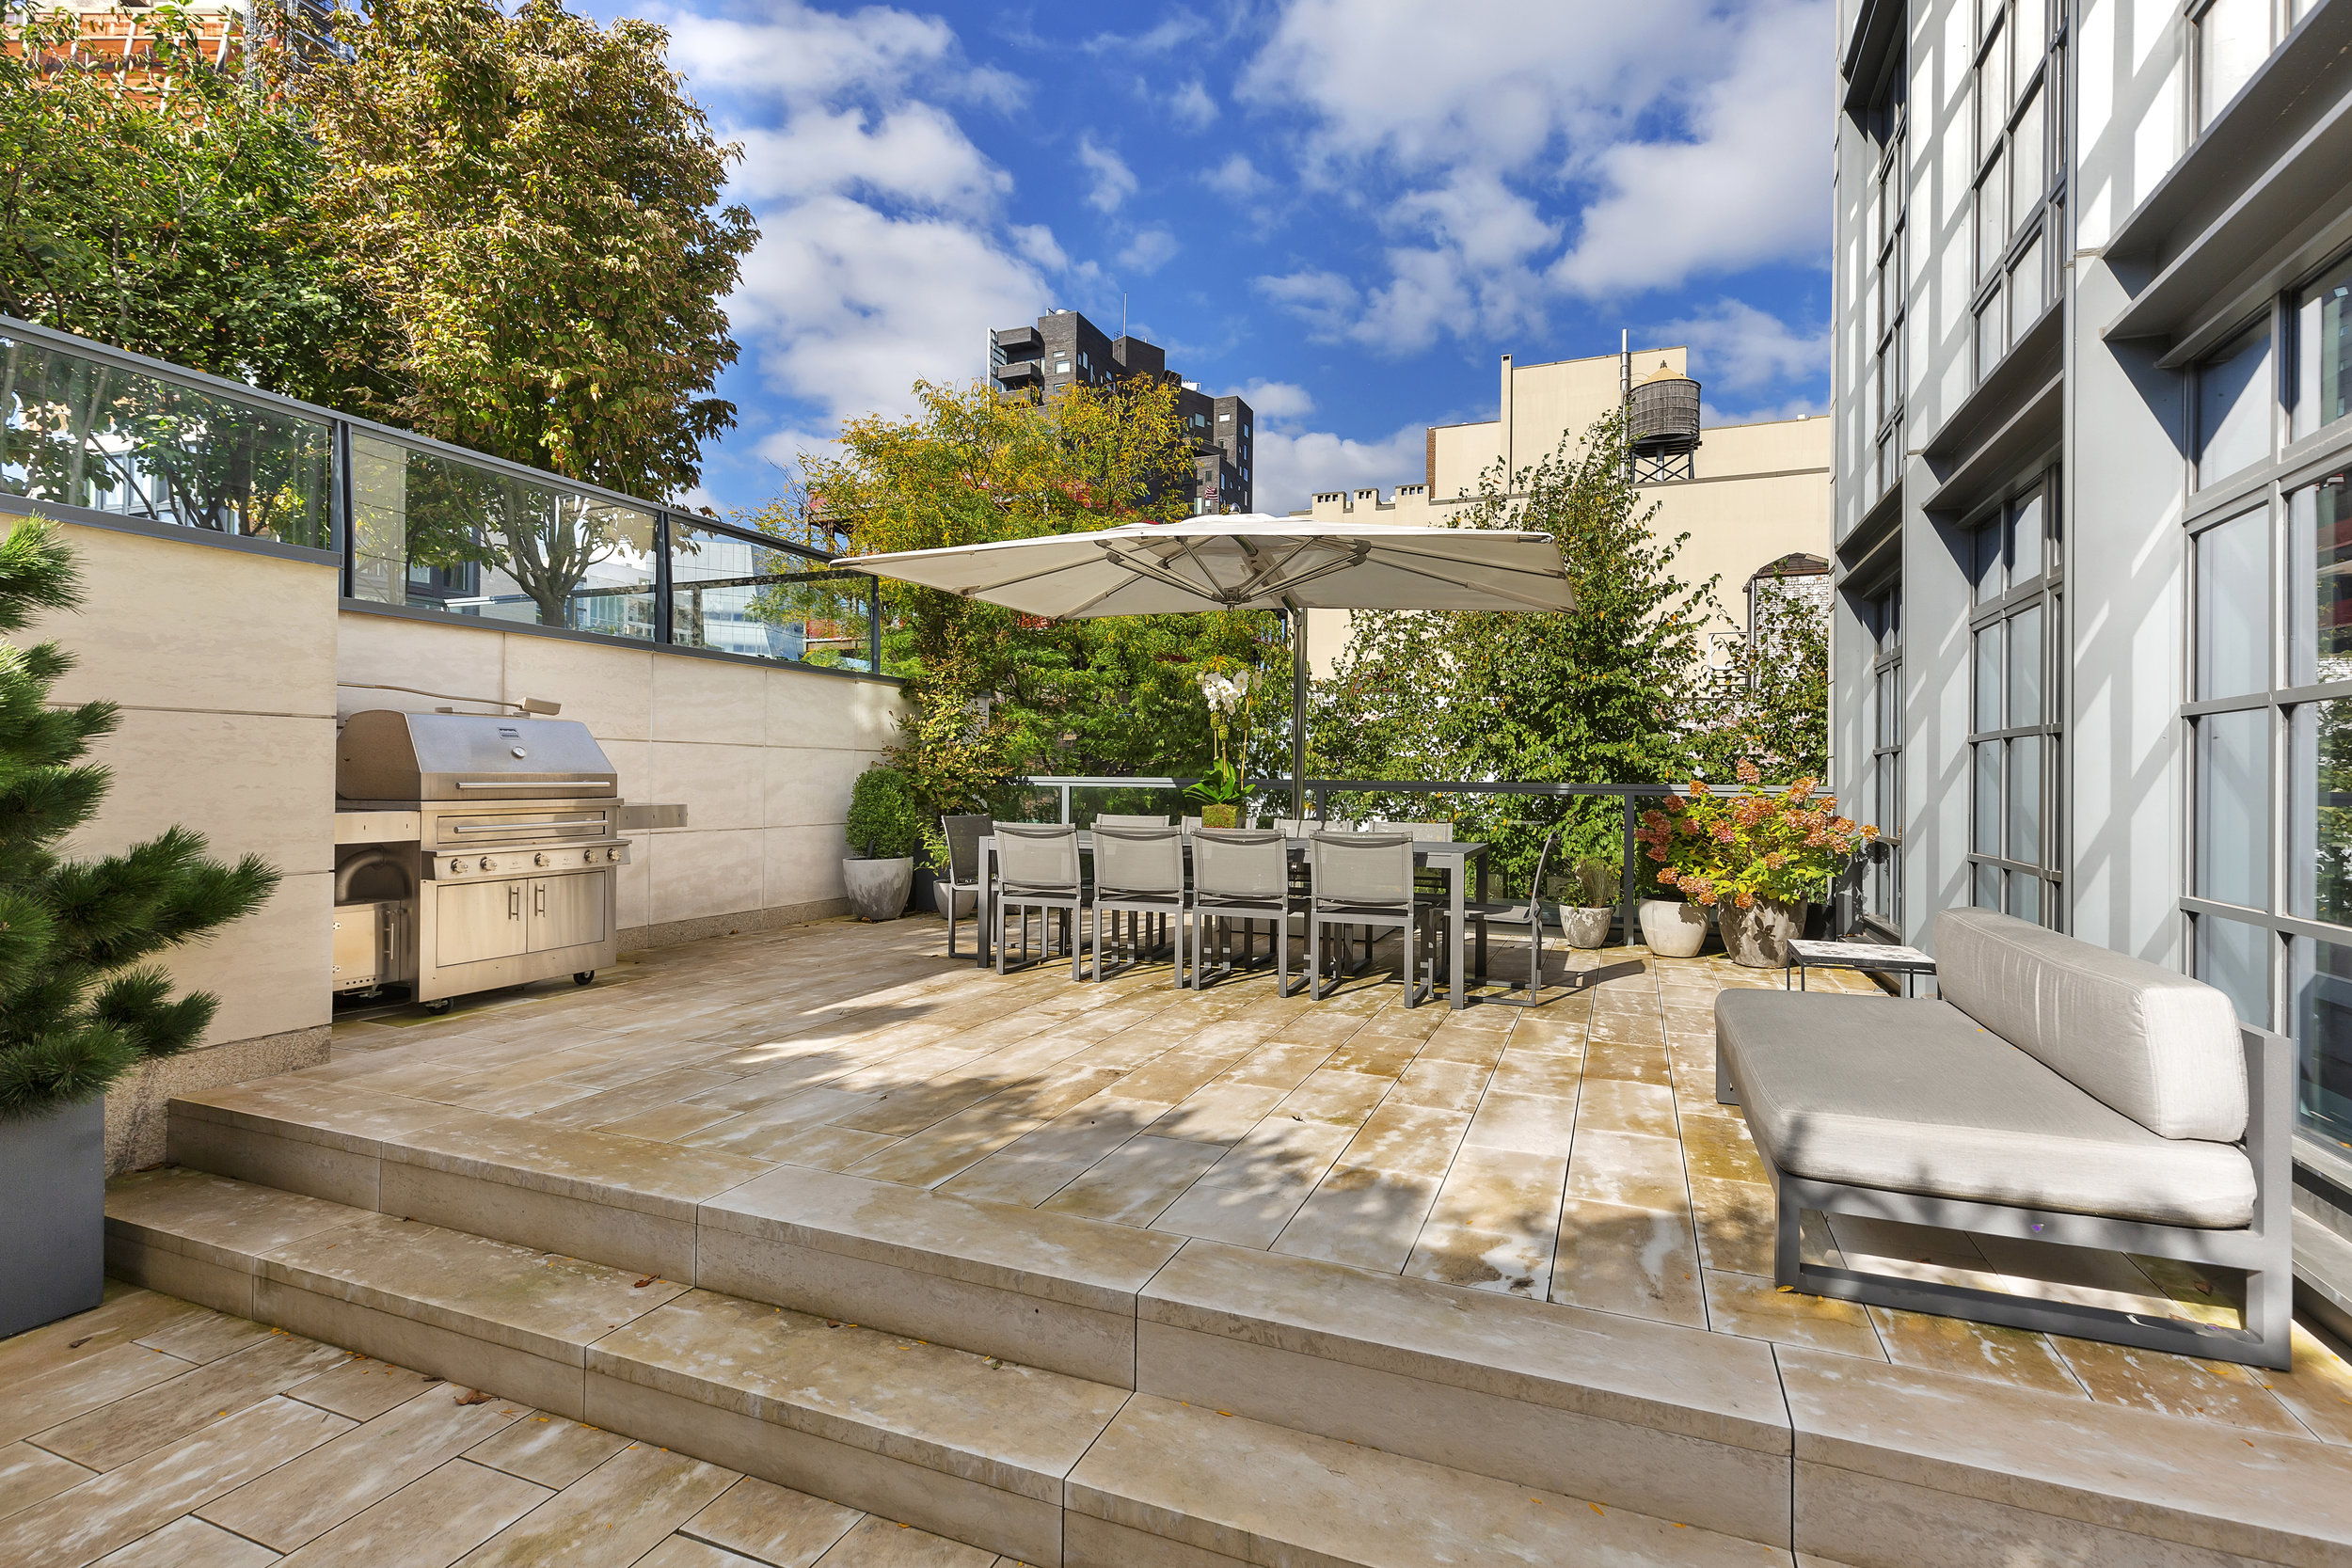 500West21stStreet5D-ChelseaNewYork_Scott_Boyd_DouglasElliman_Photography_79315513_high_res.jpg